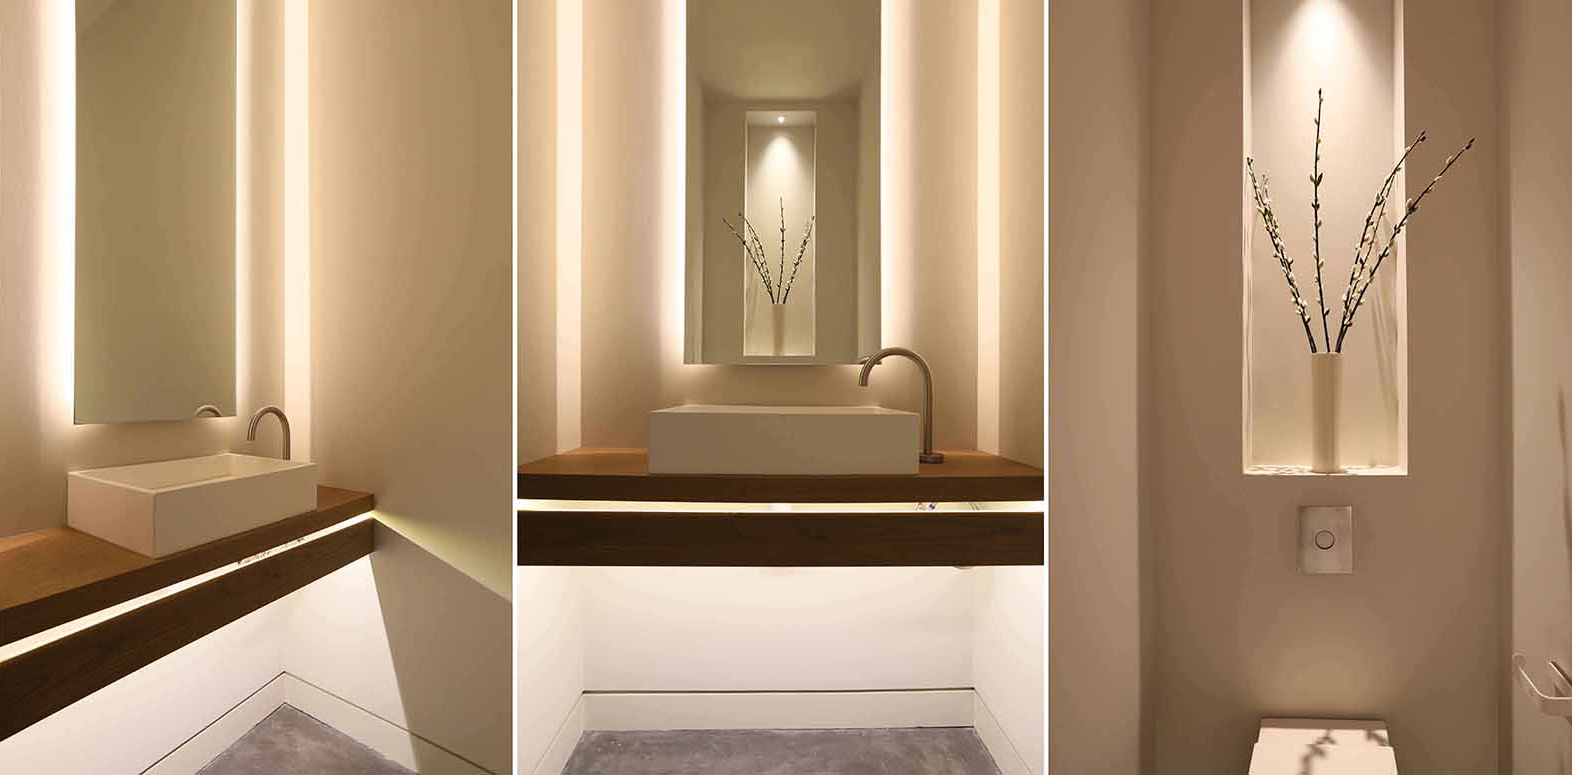 Cloakroom bathroom lighting